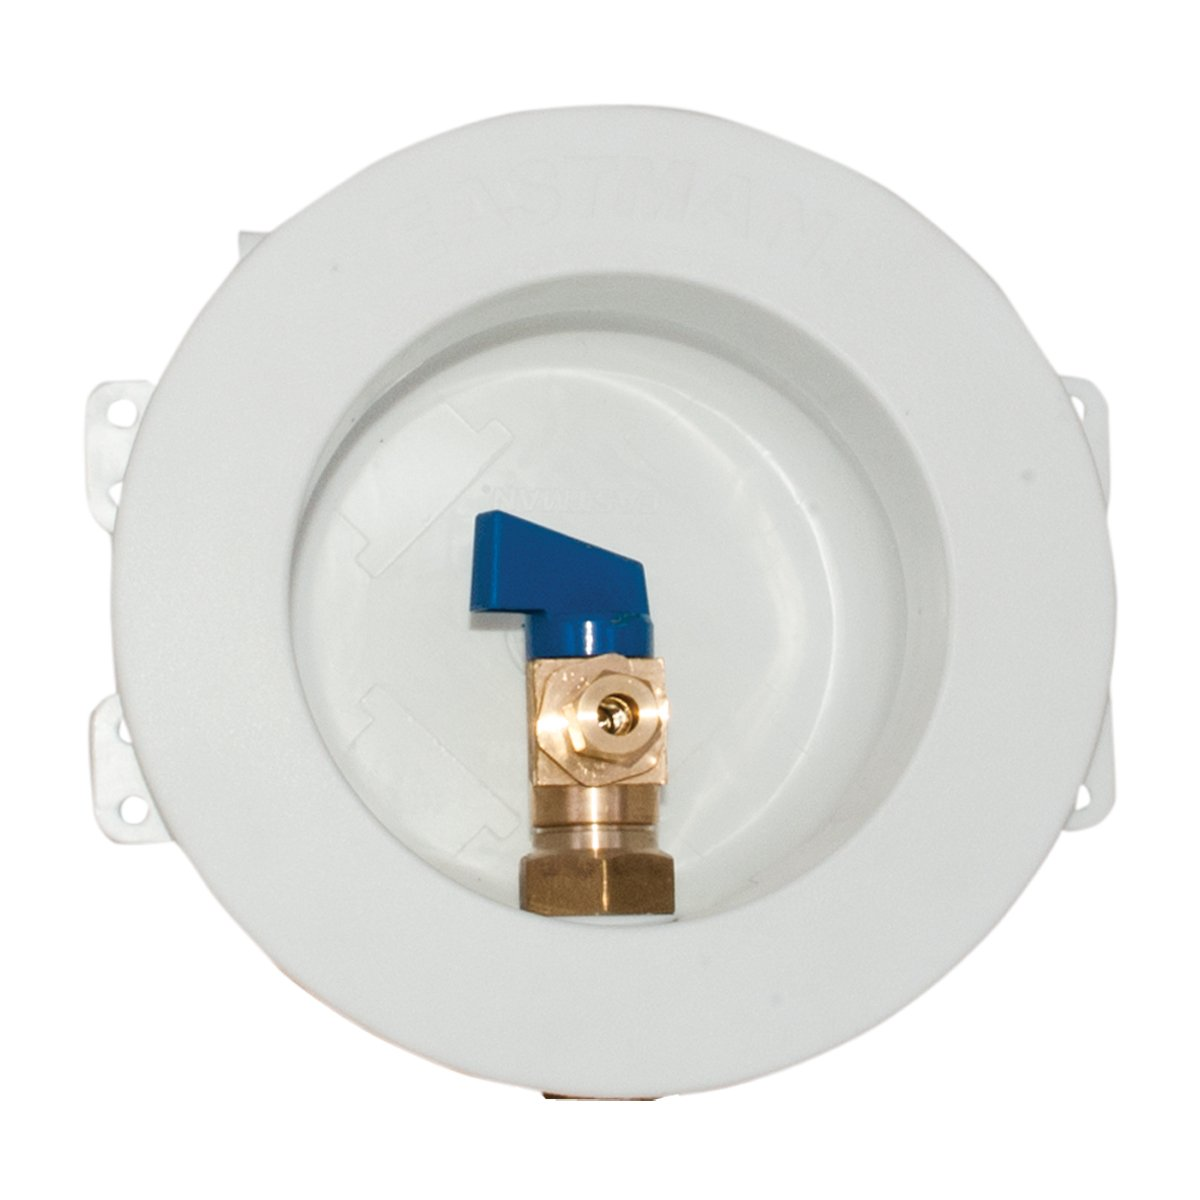 Eastman 60263 Round Mini Ice Maker Outlet Box, 1/2-inch Expansion PEX Connection with Installed 1/4-Turn Ball Valve, White